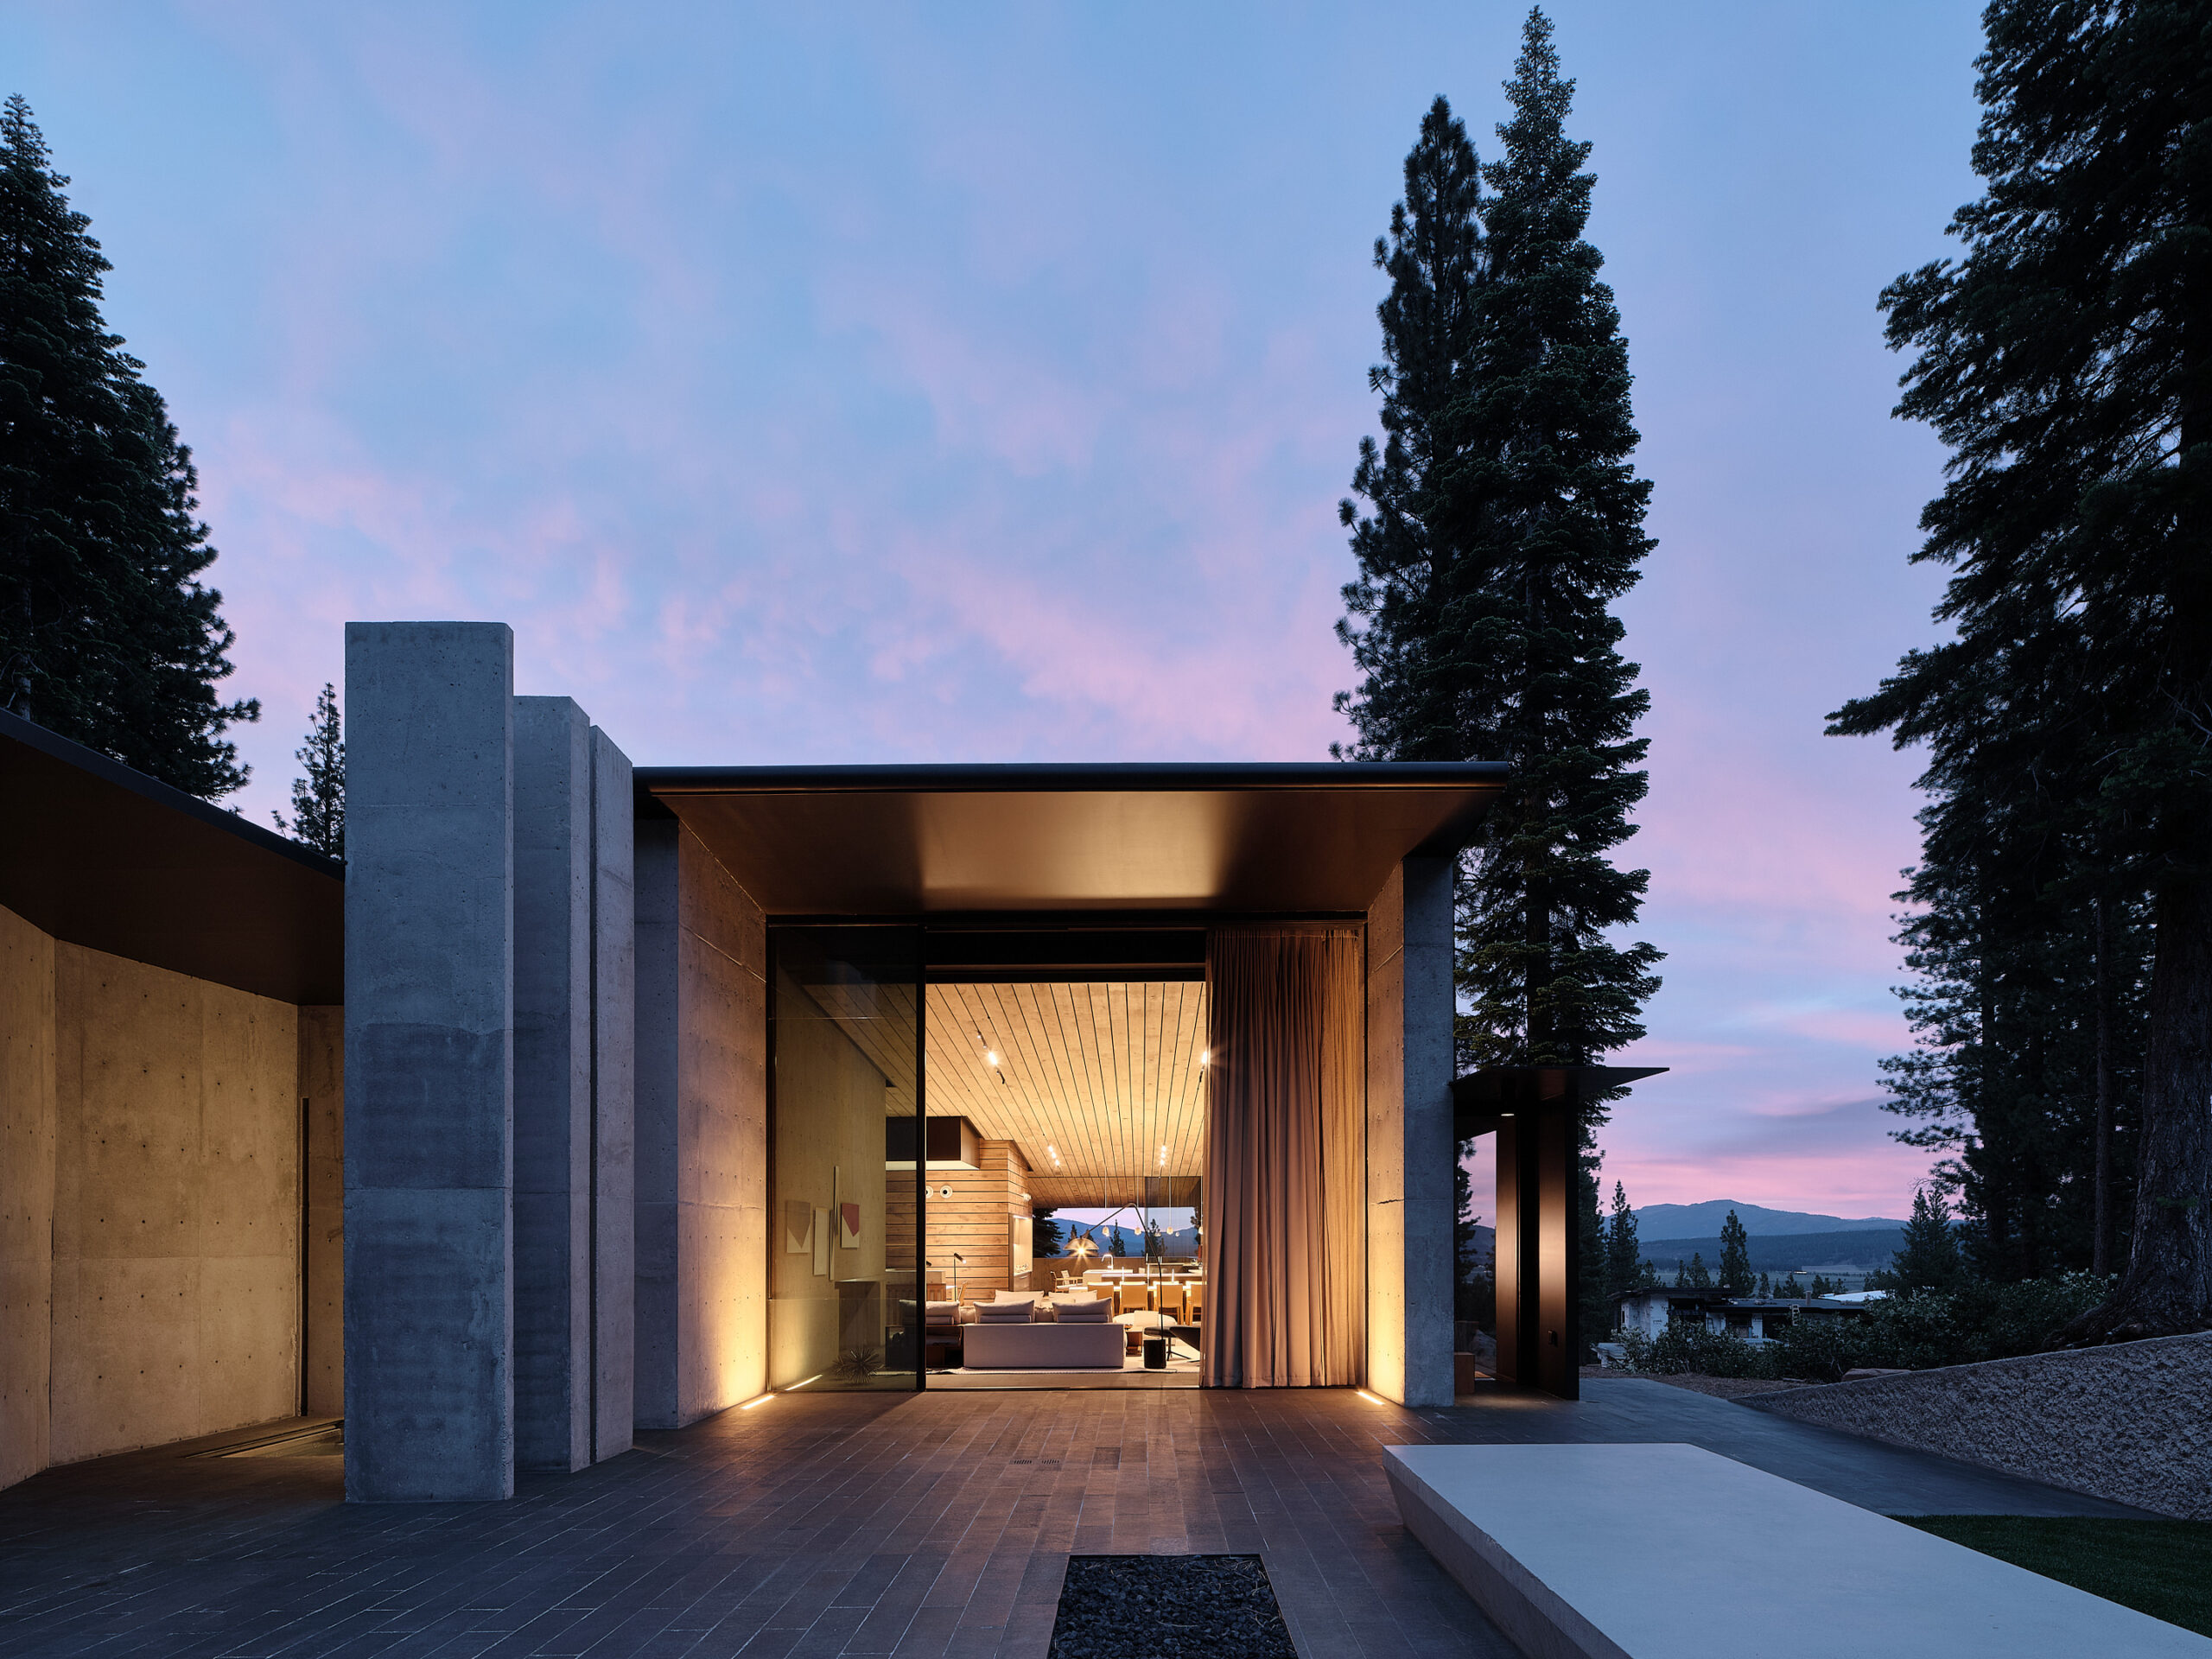 The views and the beautiful surrounding landscape are the focal point of the house